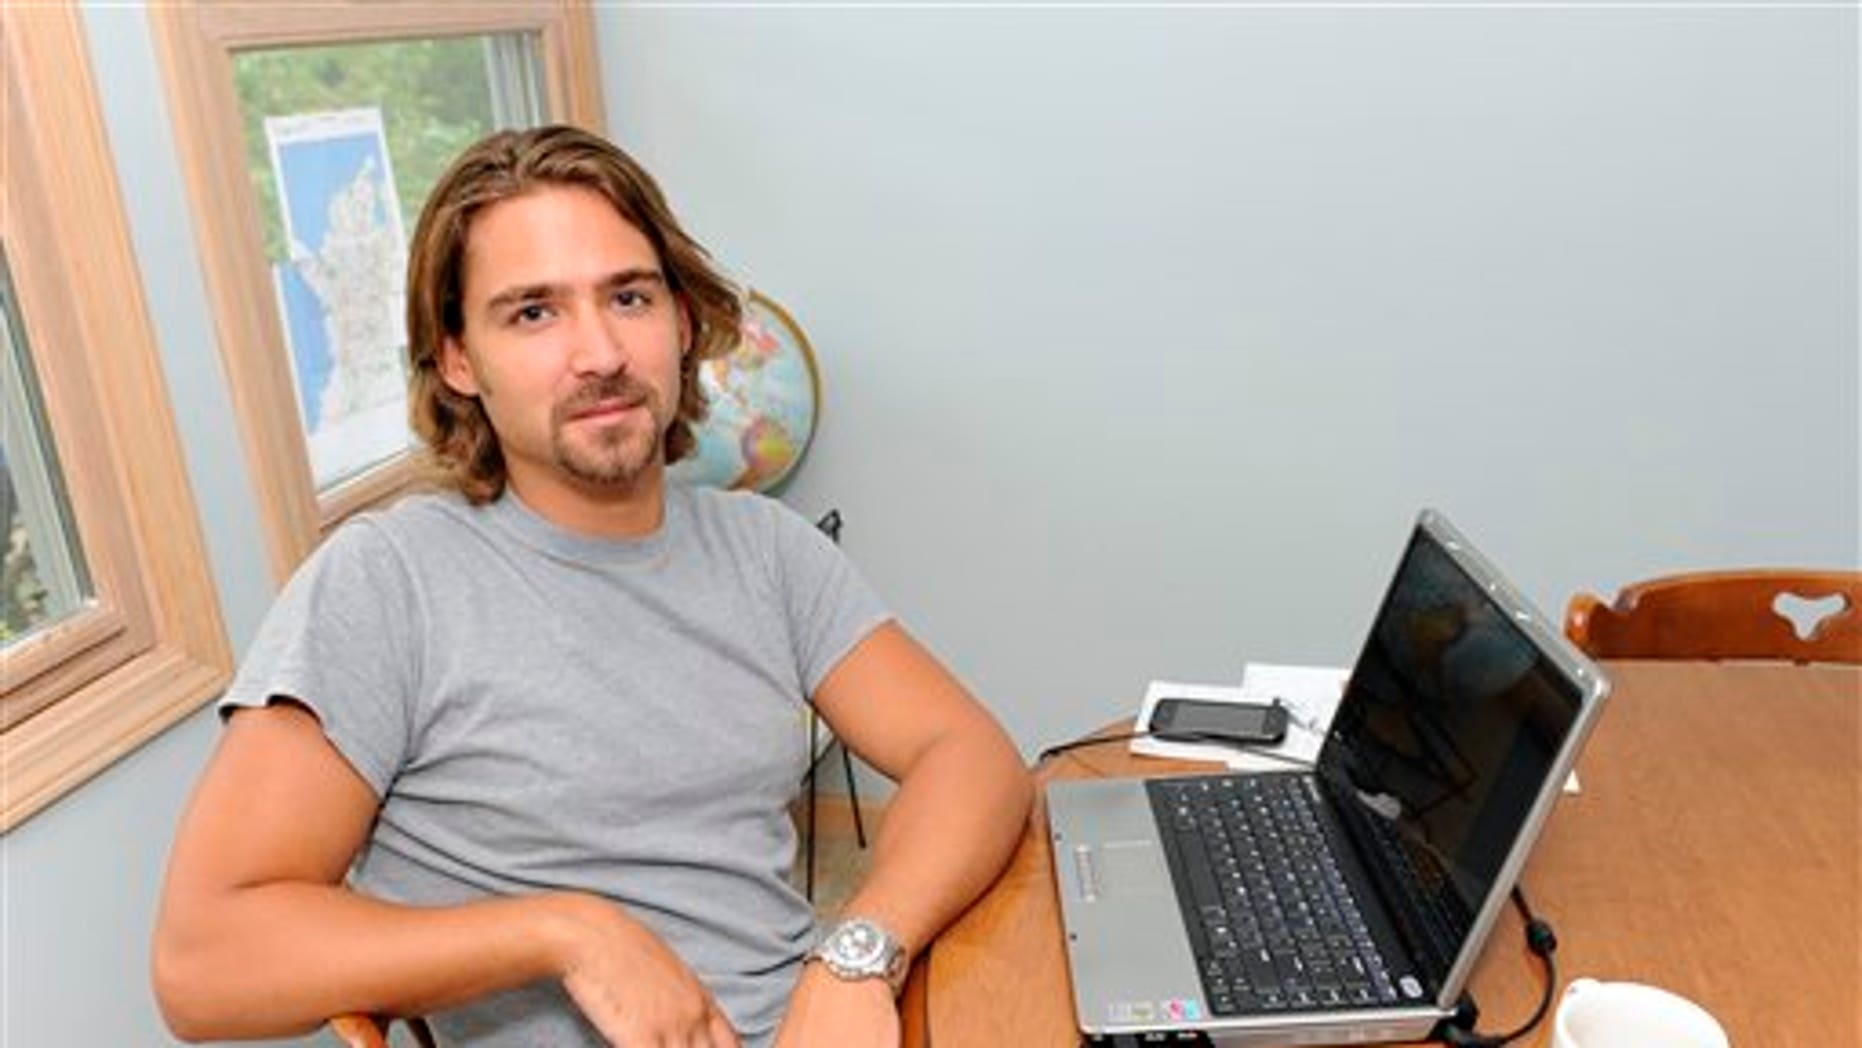 September 2: Ryan McGrath, 26, poses in his home in Michigan City, Ind. McGrath has been working part time designing web sites for small businesses but wants steadier full-time work.